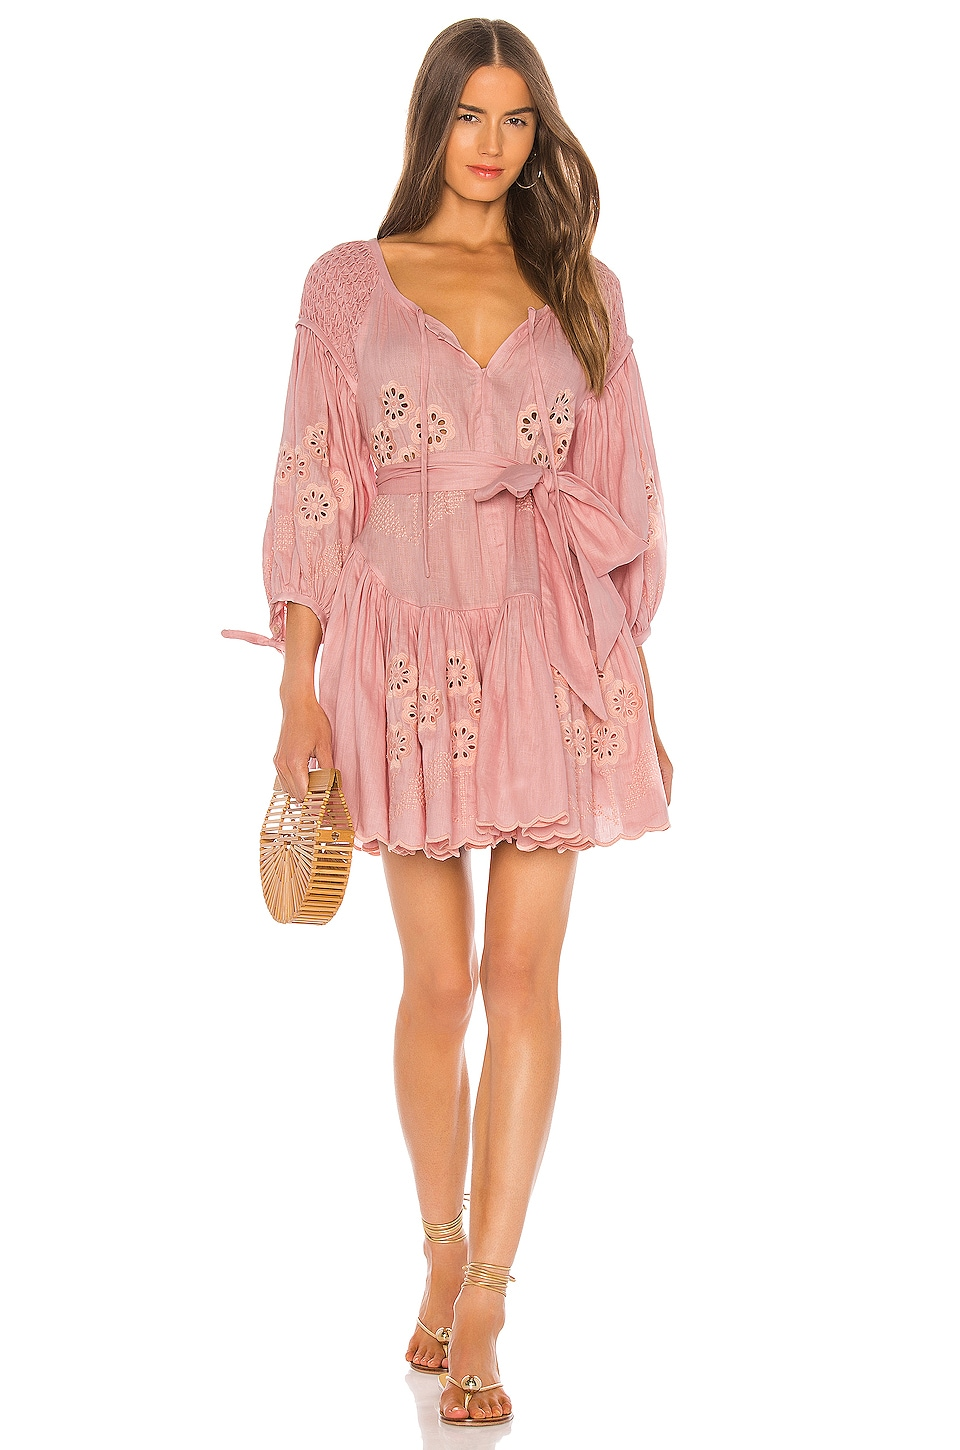 Innika Choo Meg Nettick Dress in Candy Floss